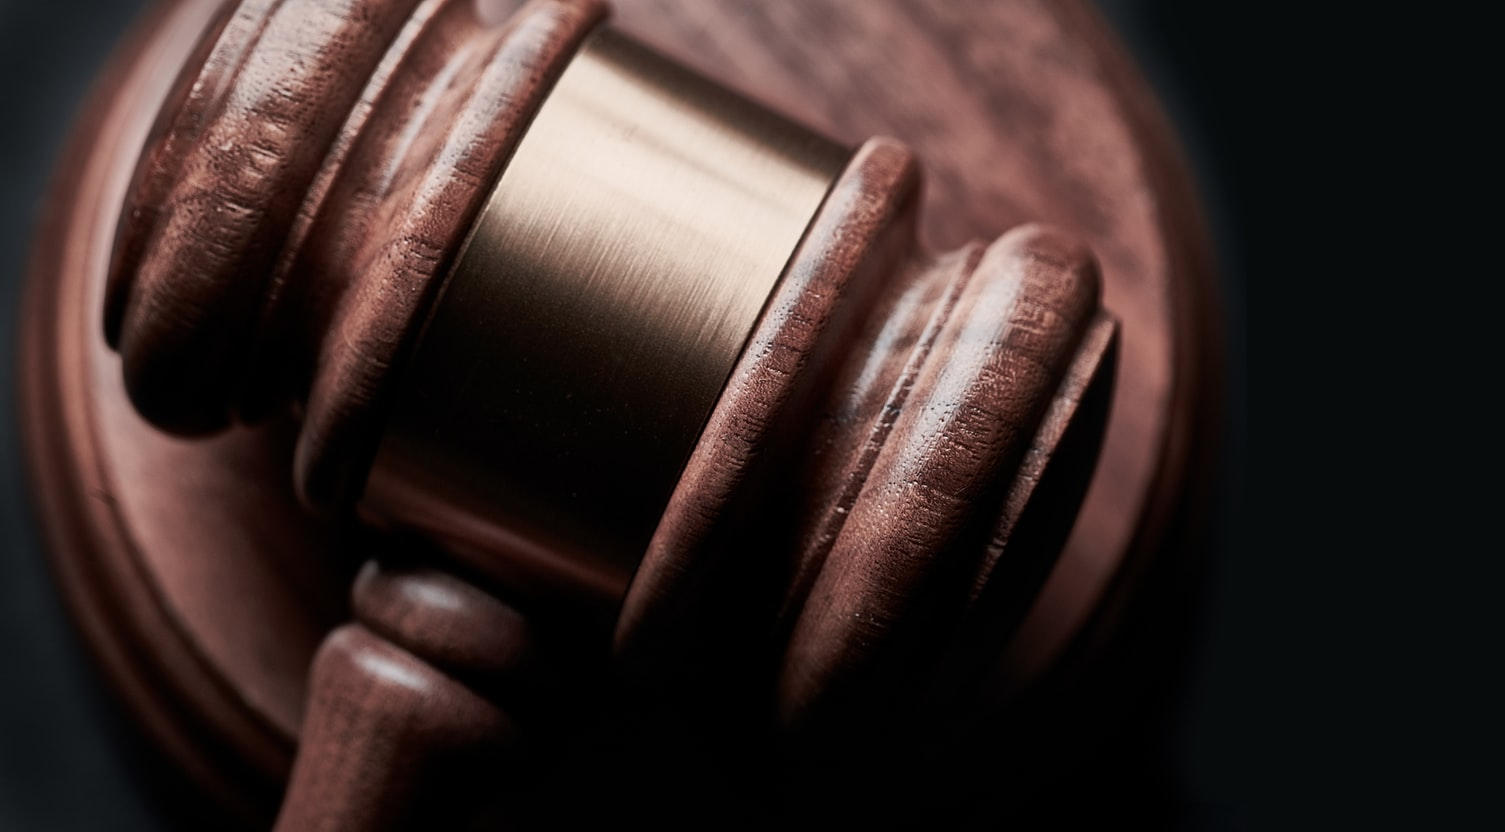 The Process Behind a Personal Injury Lawsuit